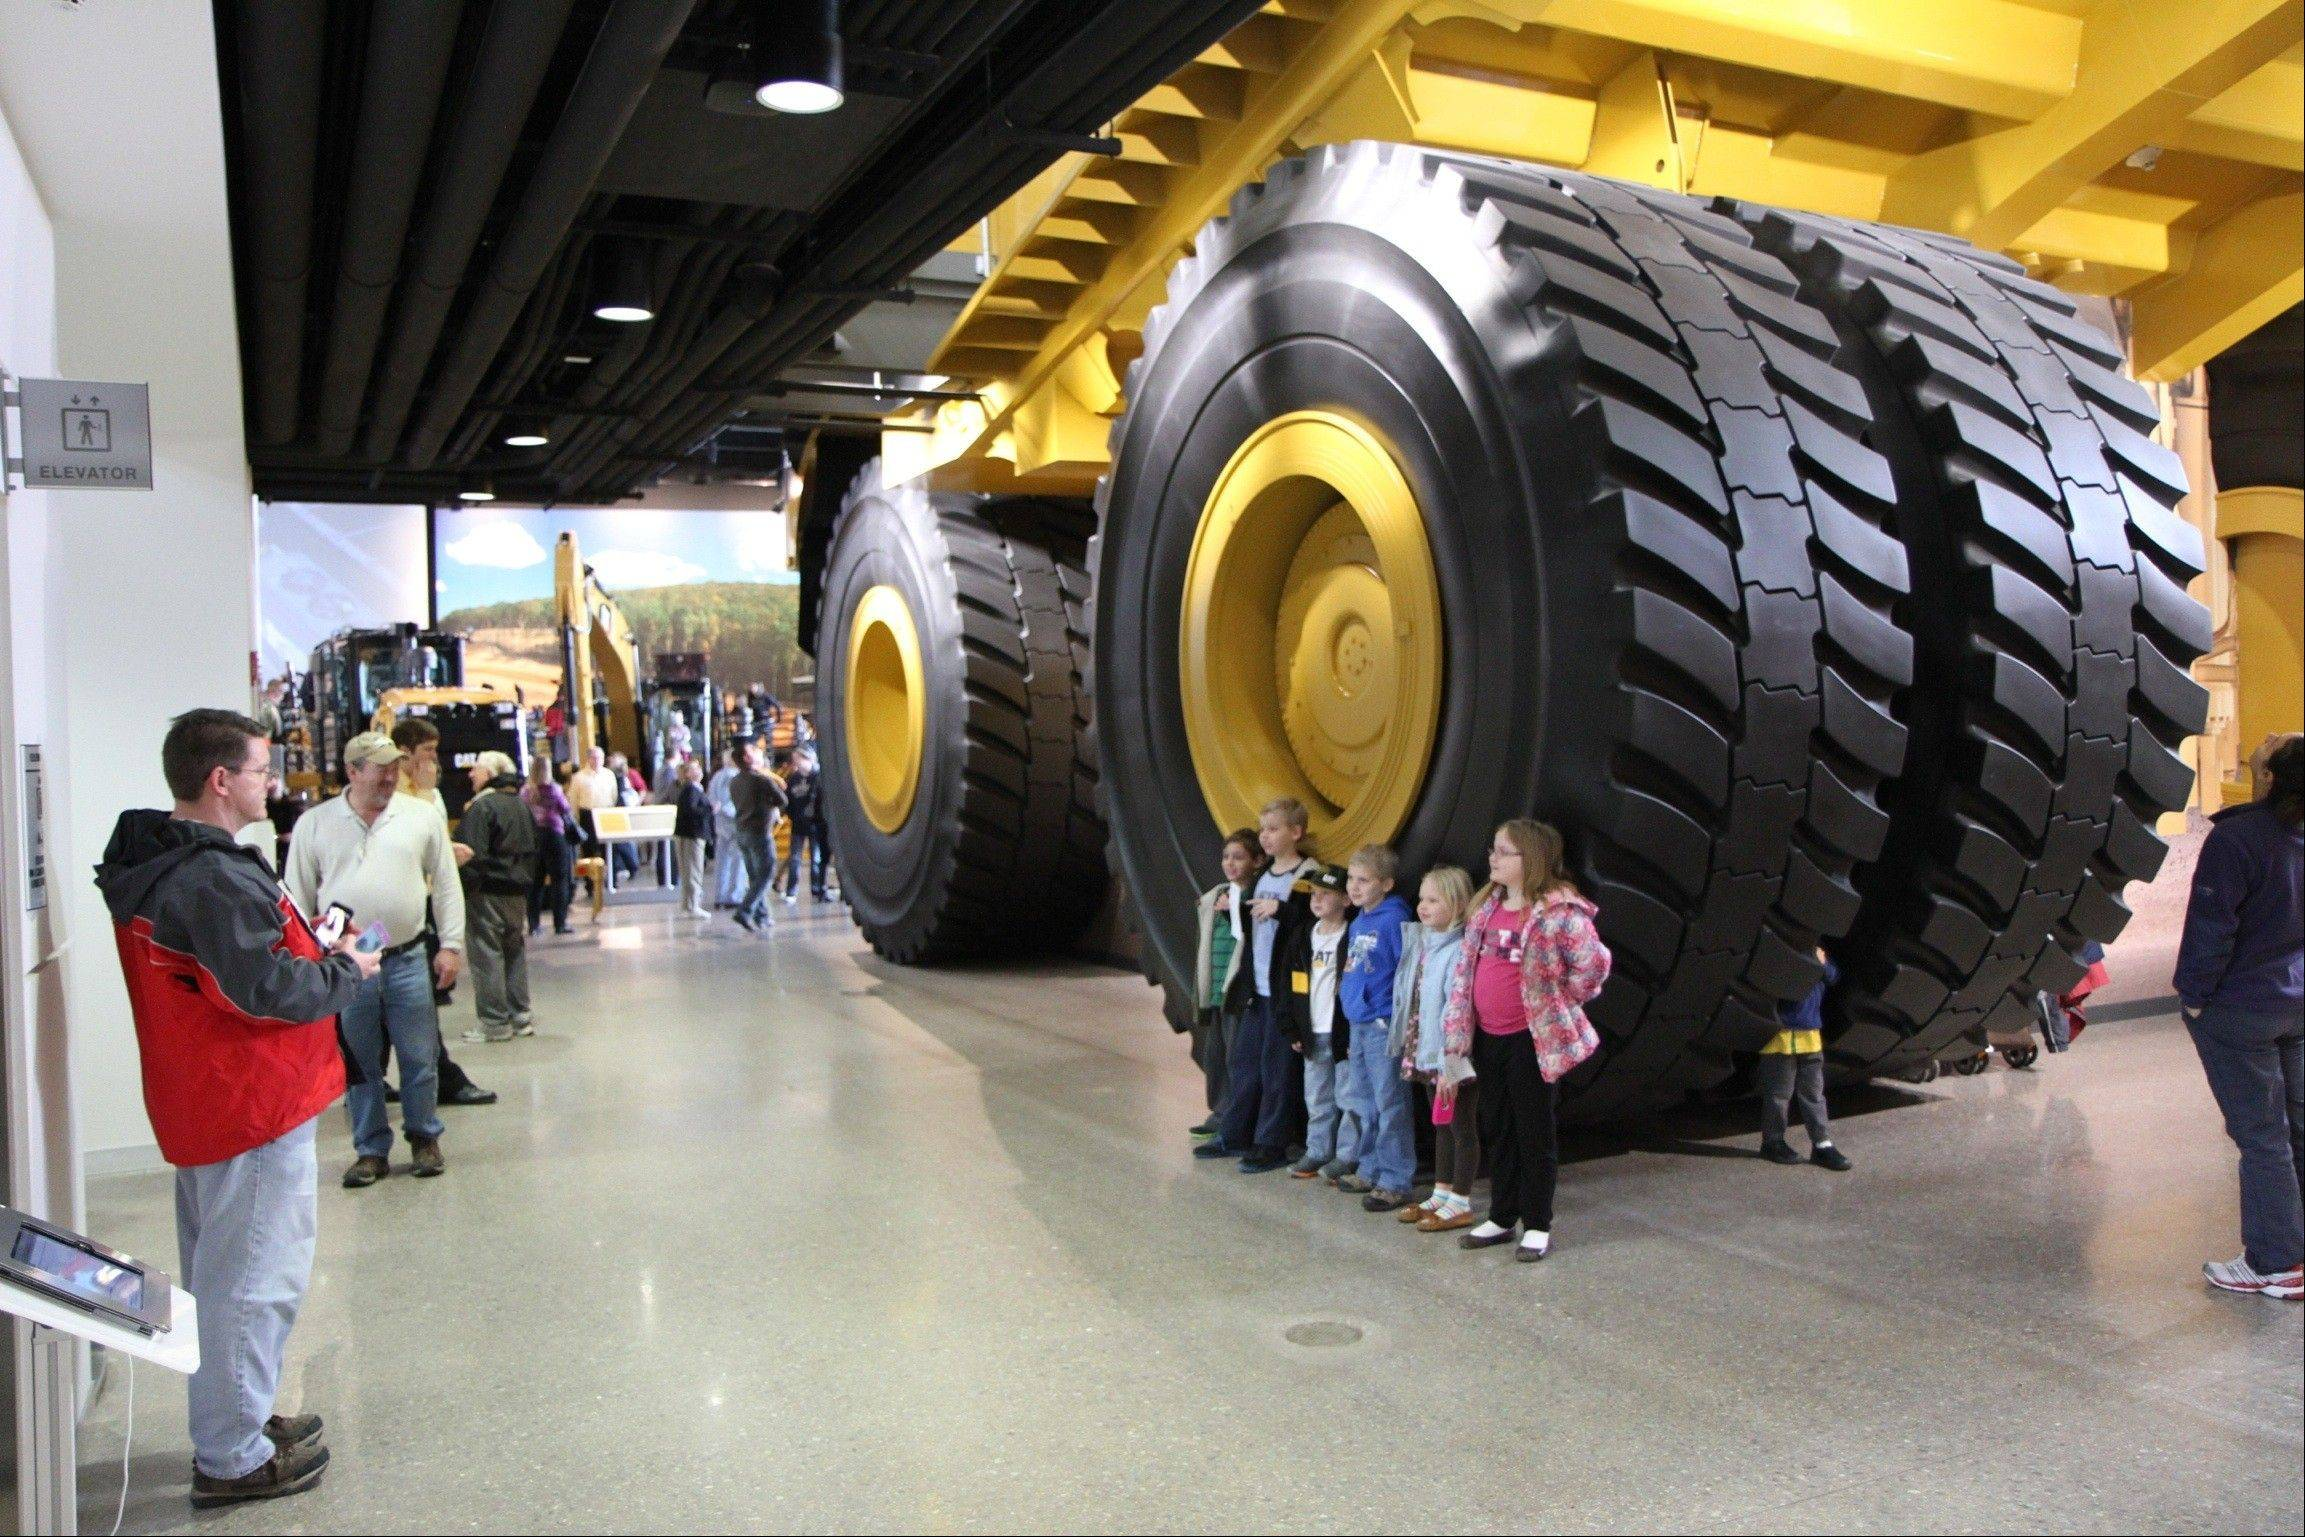 Equipment on display at the Caterpillar Visitors Center in Peoria. Caterpillar Inc. manufactures heavy equipment that bulldozes, digs, lifts and performs other tasks at construction and mining sites.